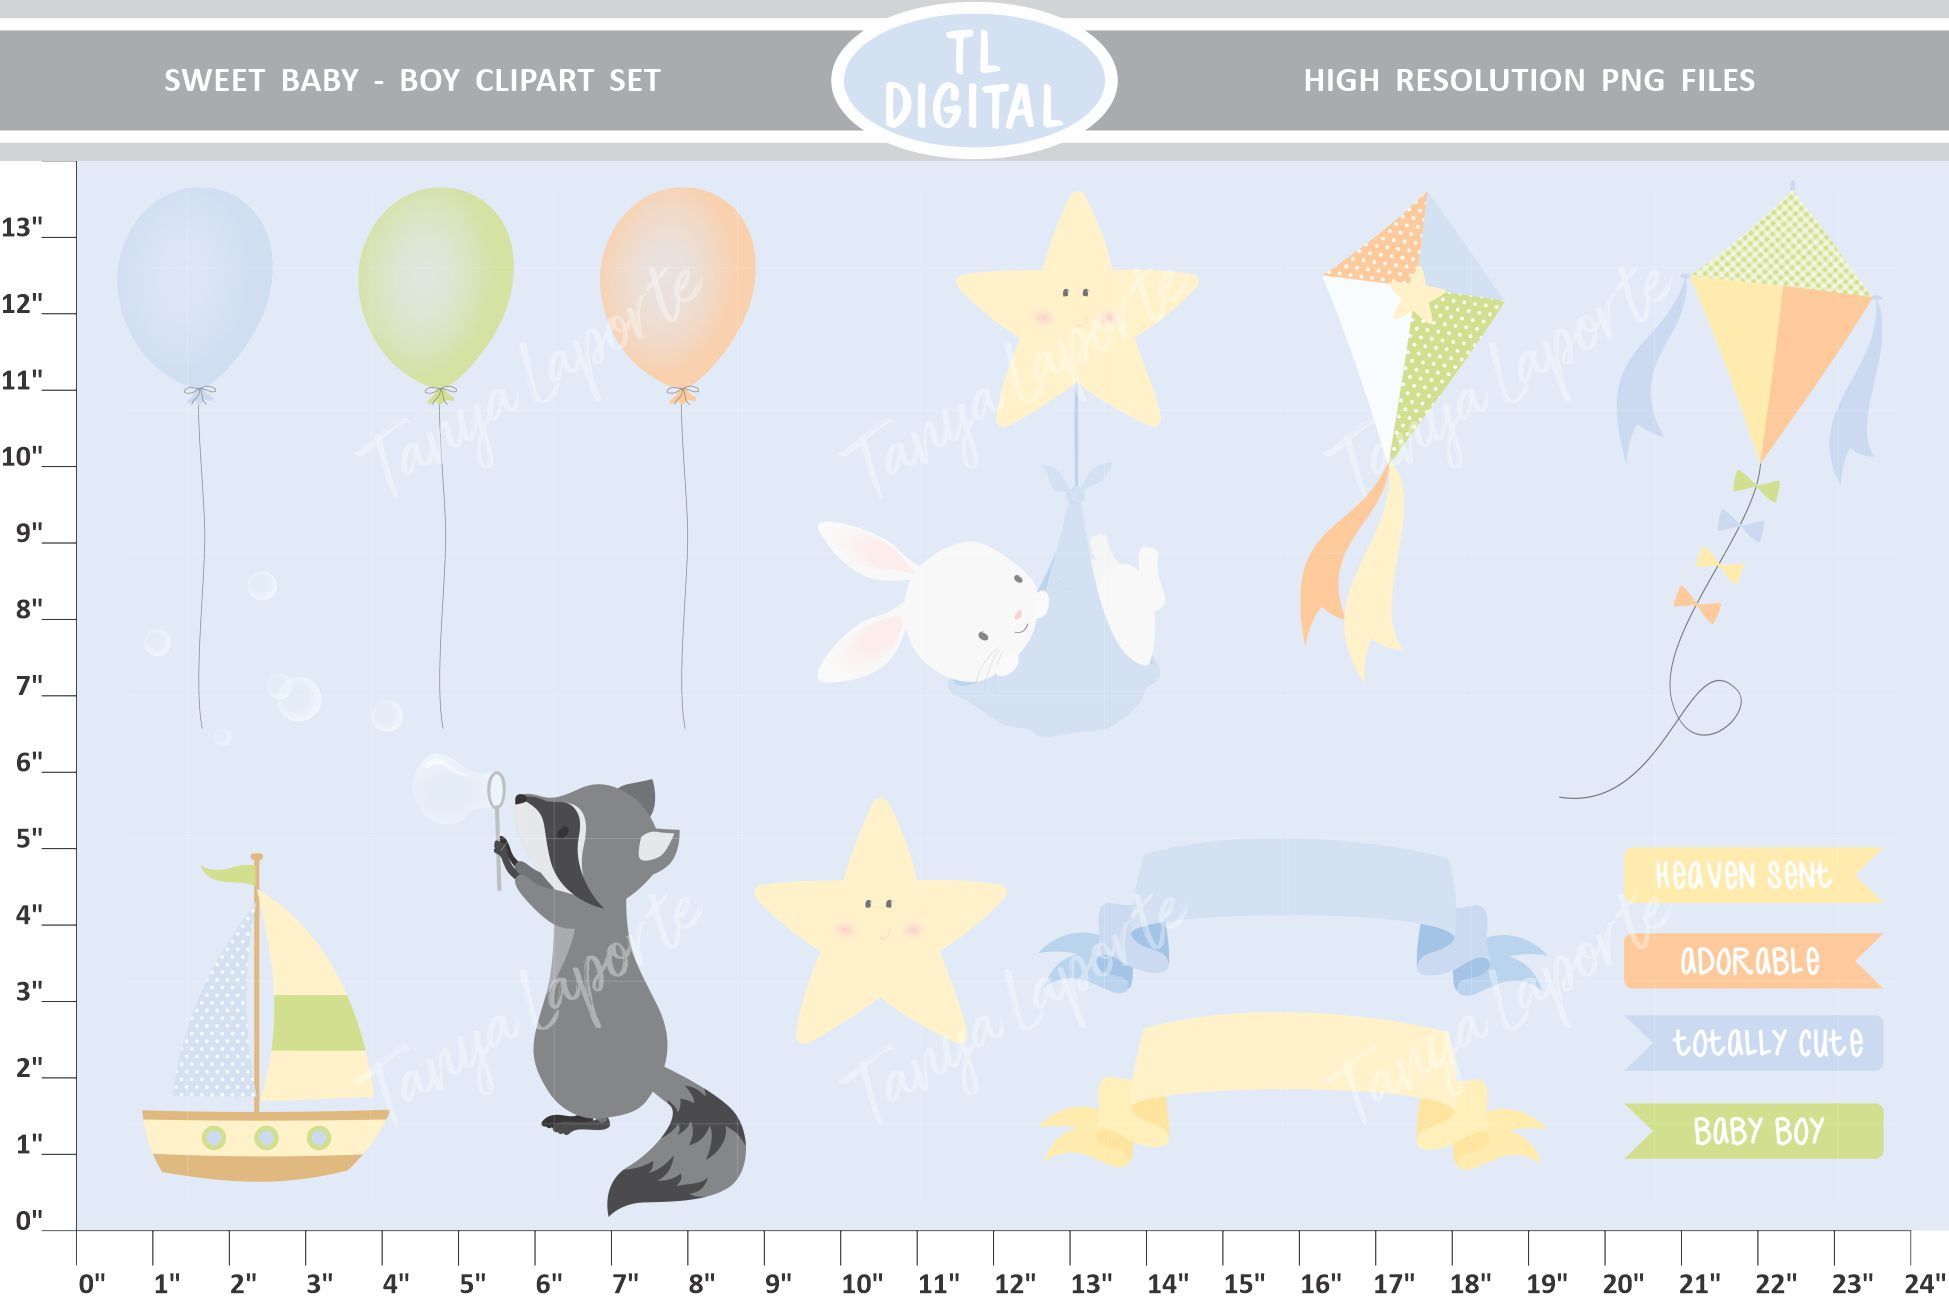 Download Free Sweet Baby Clipart Set Boy 25 Graphics Graphic By Tl Digital Creative Fabrica for Cricut Explore, Silhouette and other cutting machines.